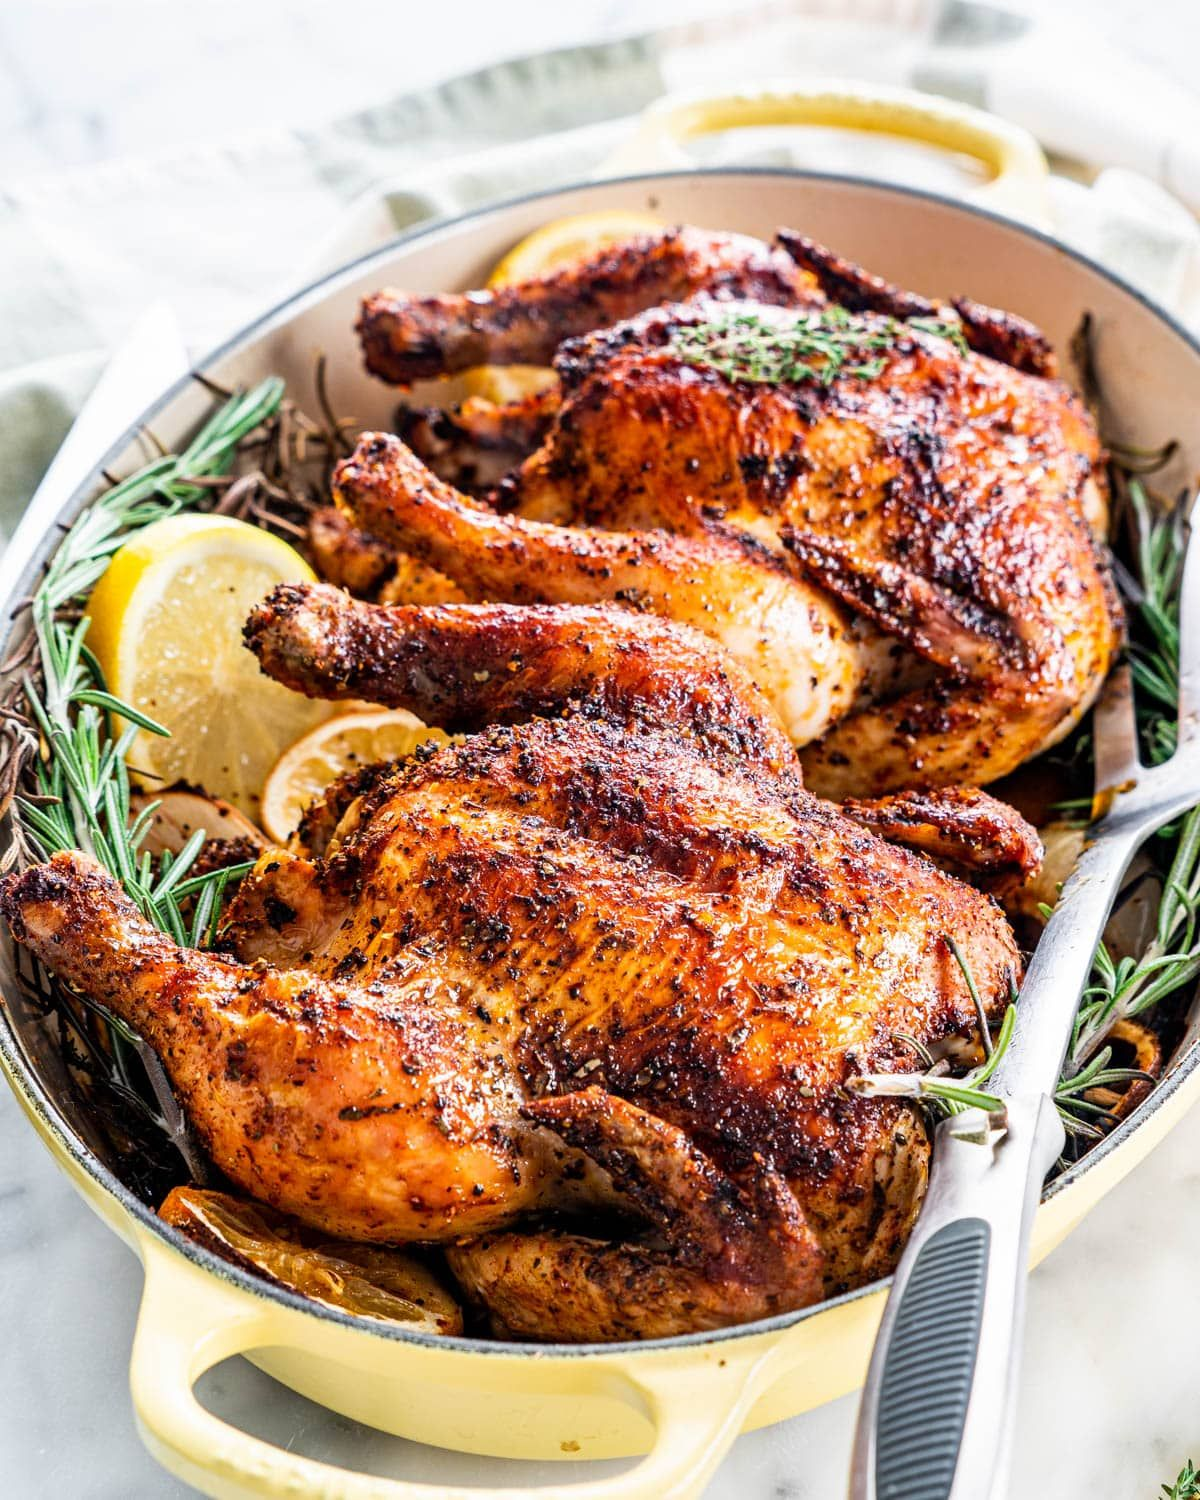 These Roasted Cornish Hens will be your new favorite recipe for romantic date nights or to impress dinner party guests. They're simple, elegant, and turn out perfectly every time with my easy step-by-step instructions. #cornishhens #roastchicken